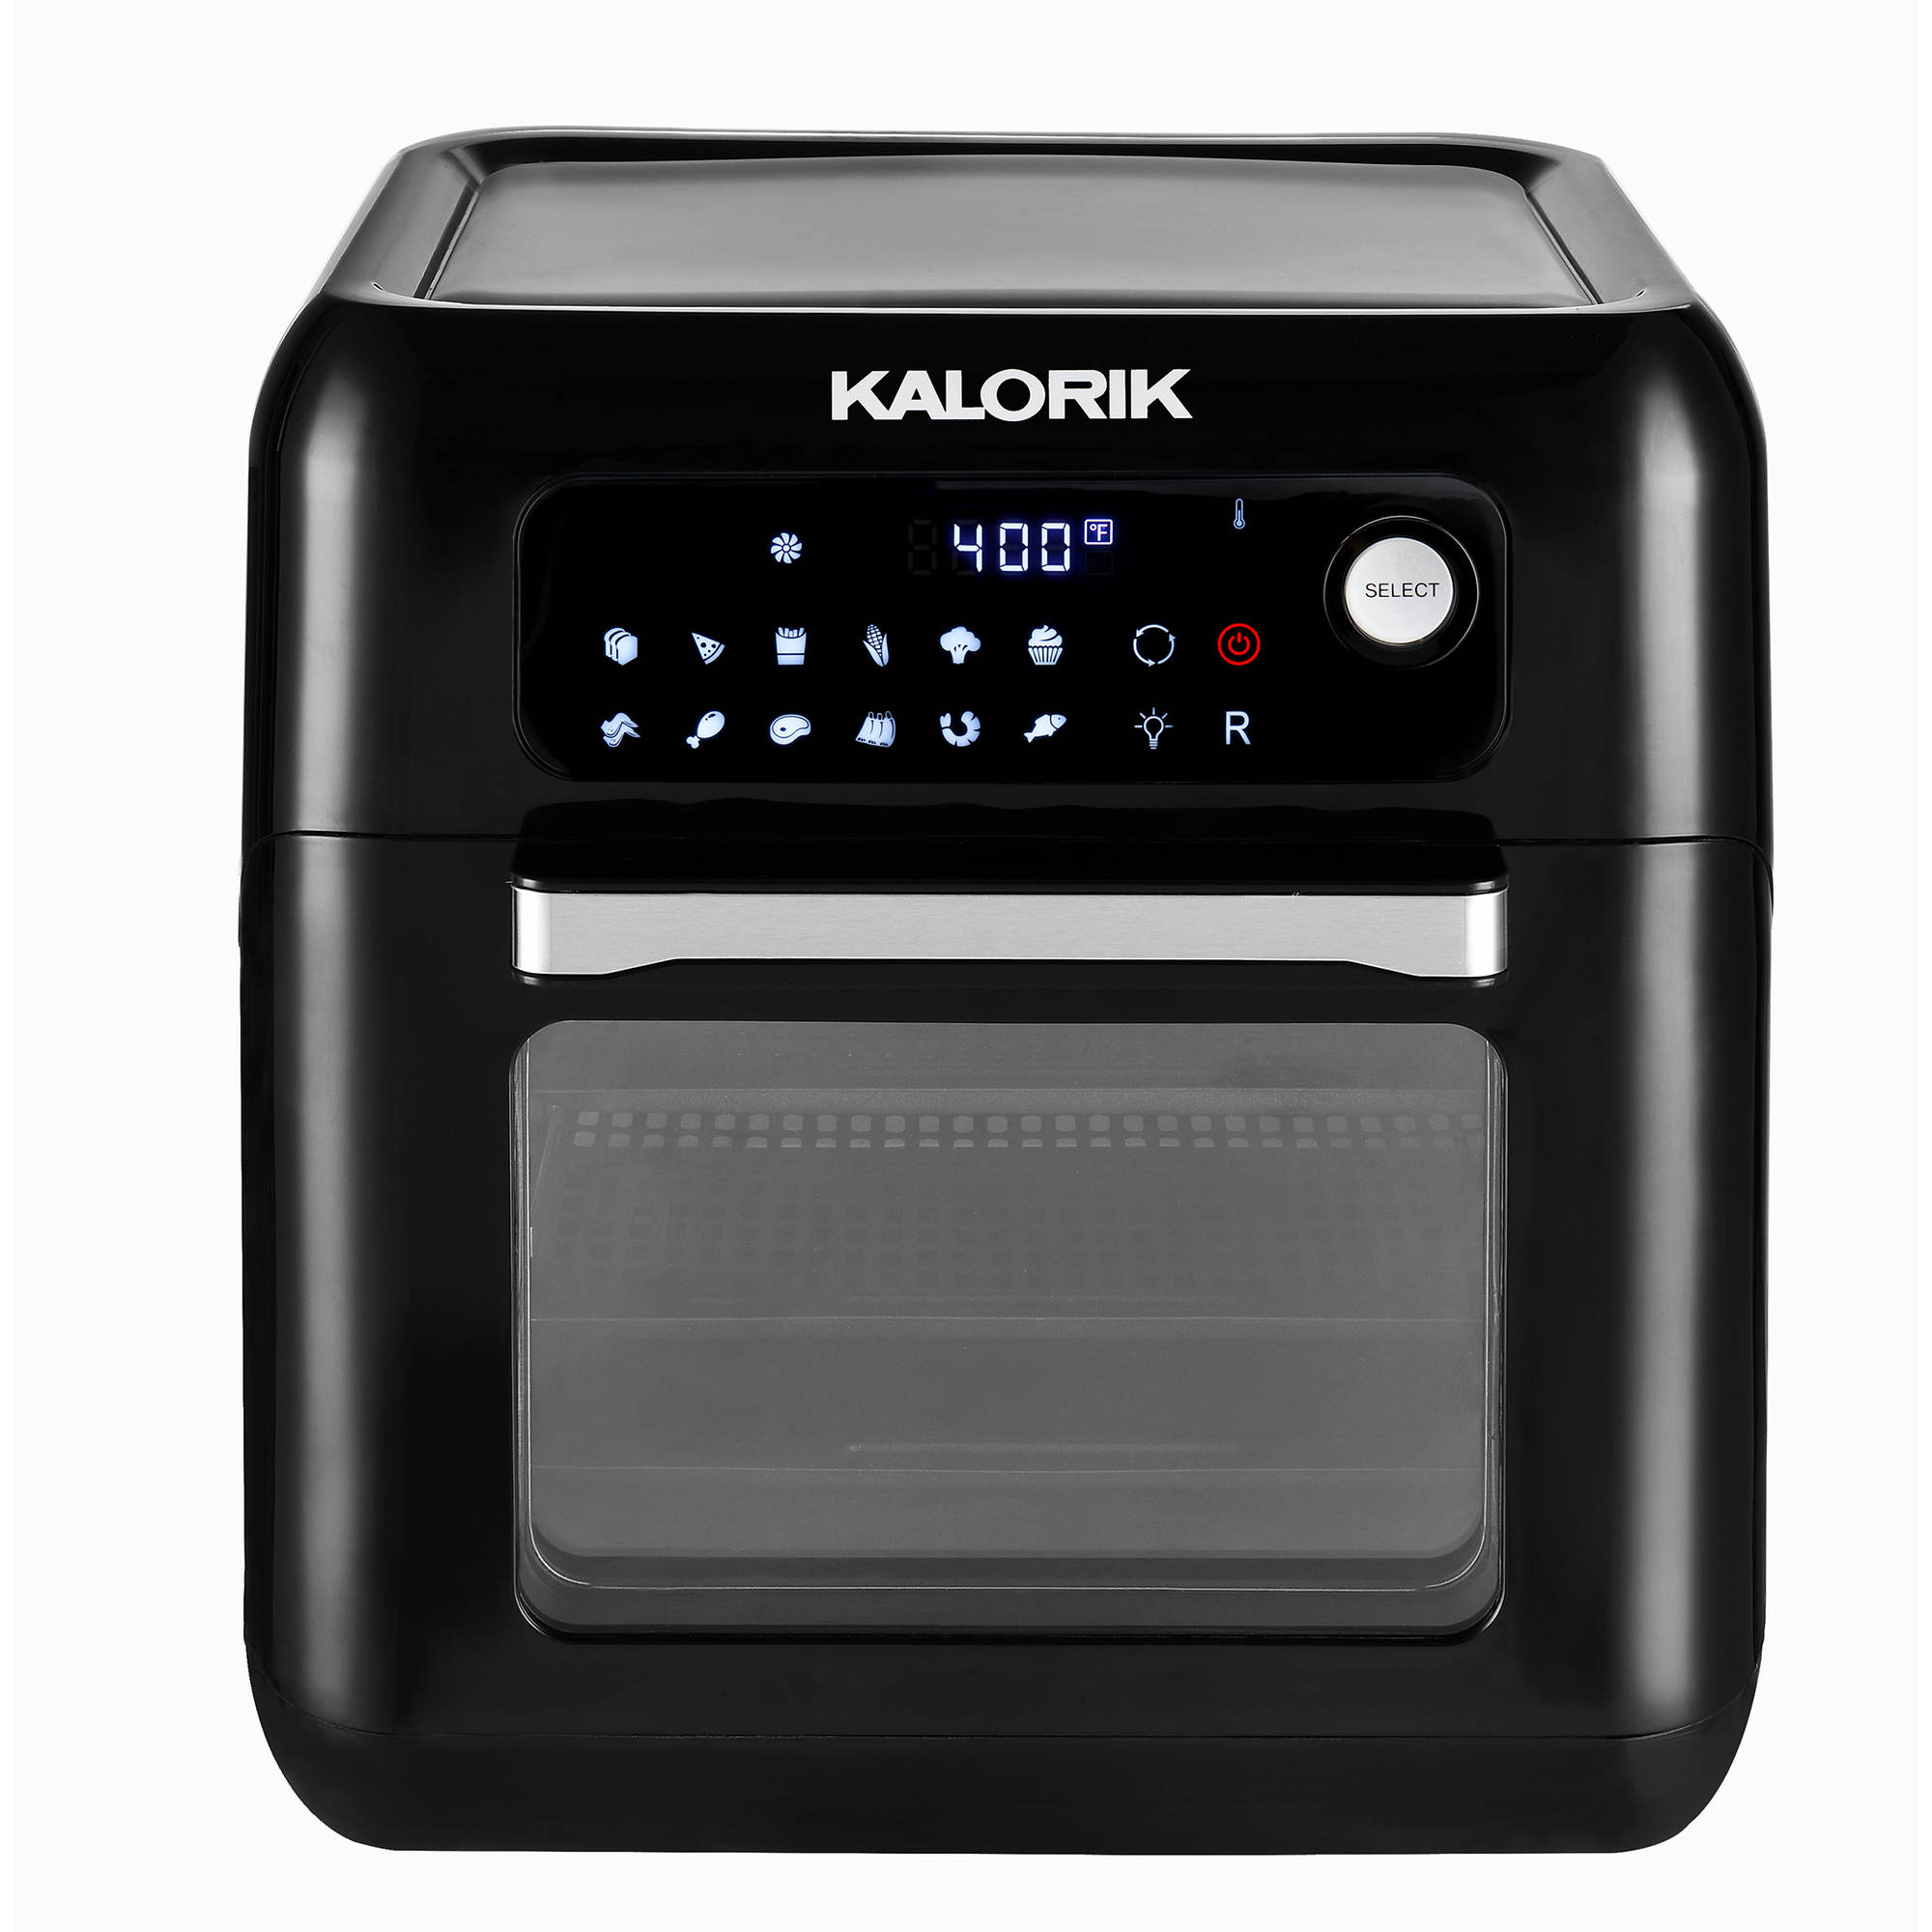 Kalorik AFO 44880 10L Air Fryer Oven